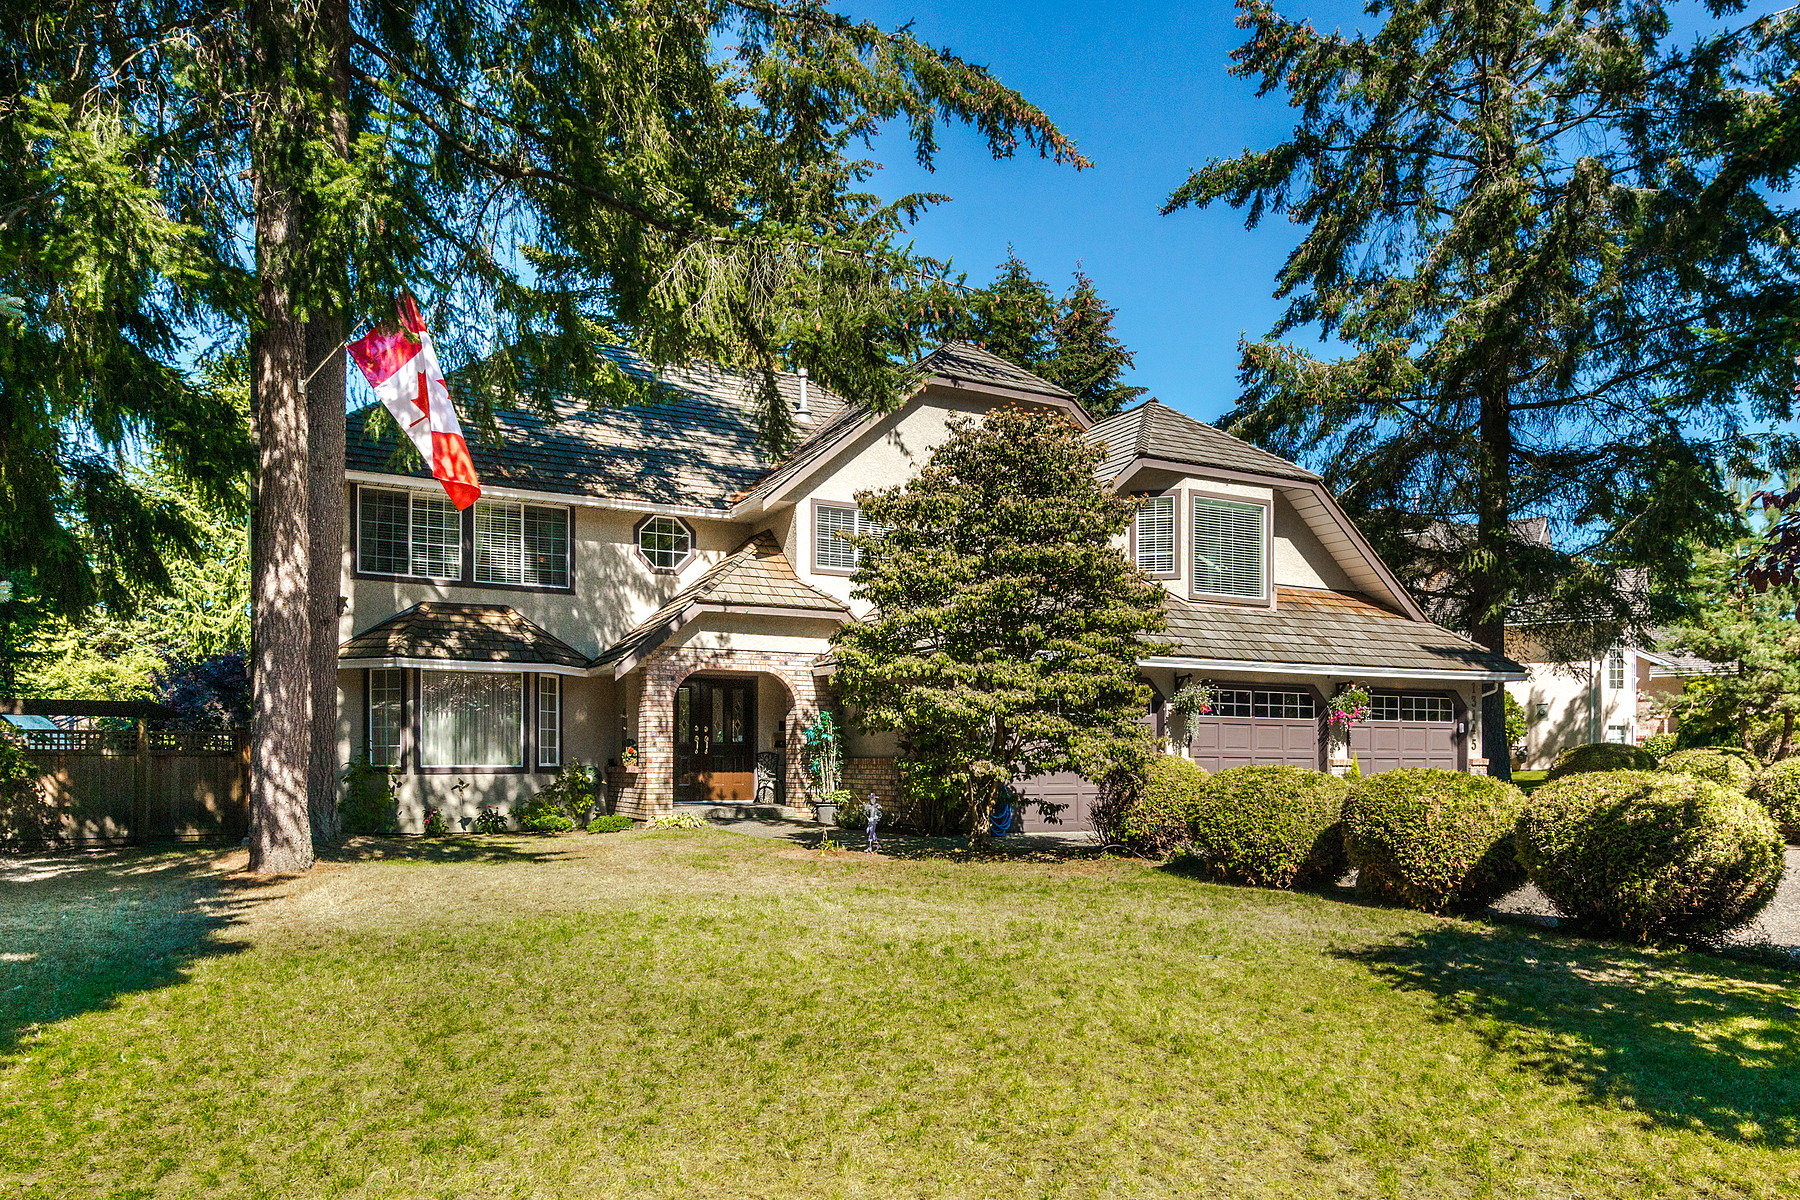 Single Family Home for Sale at Elgin Chantrell 13145 22a Avenue, Surrey, British Columbia, V4A 8Y5 Canada